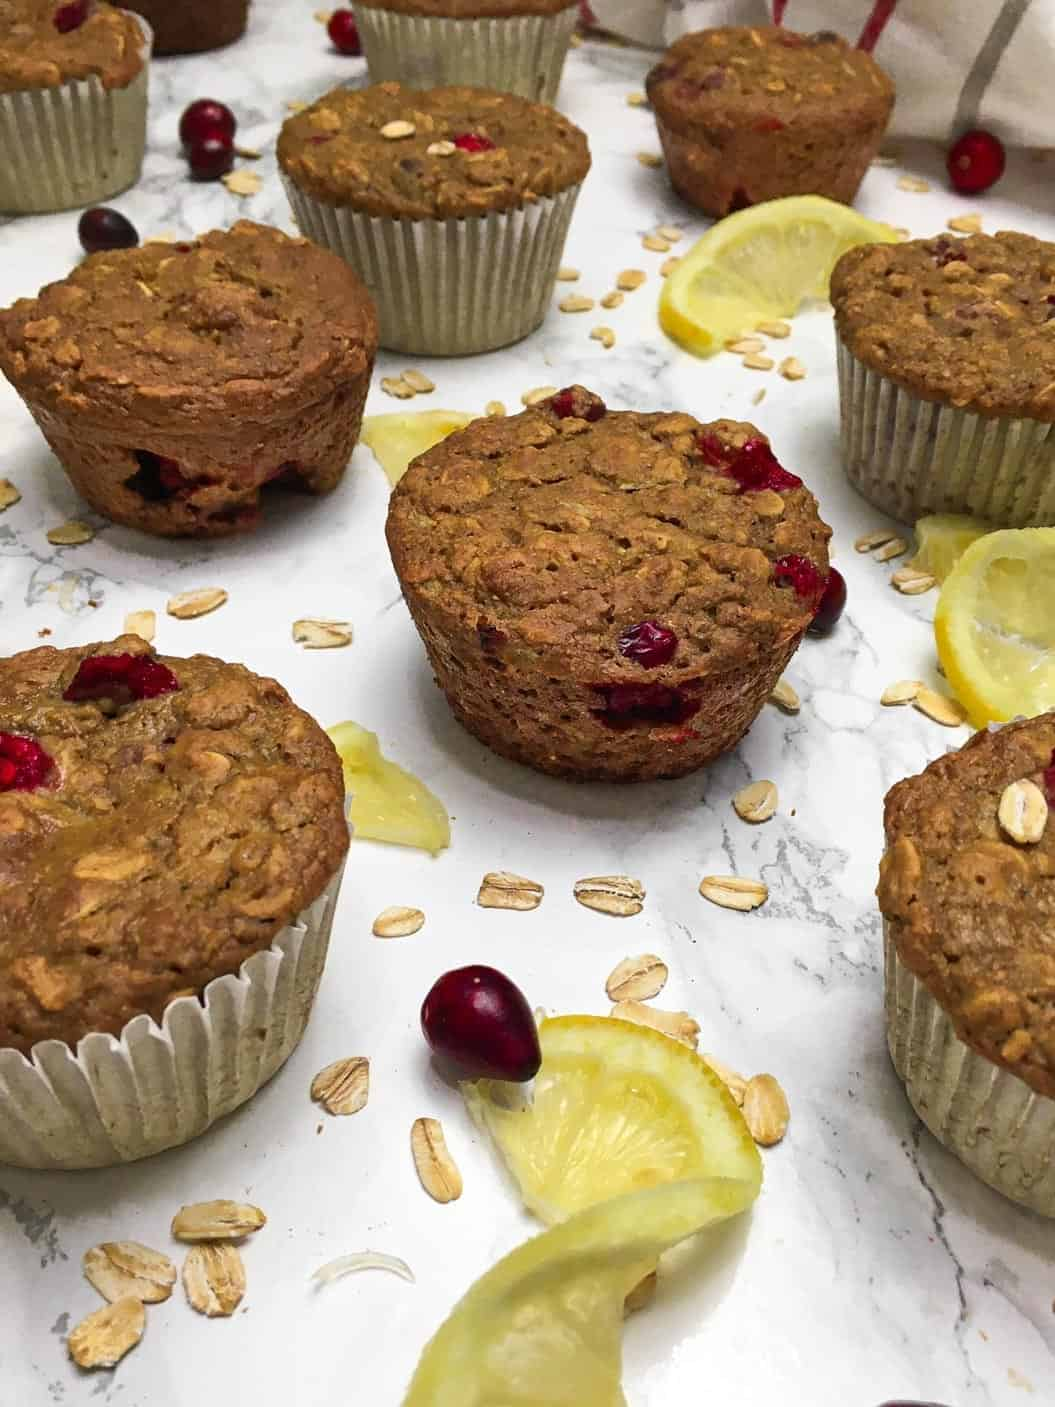 Muffins on marble counter with cranberries and lemon slices scattered between them.